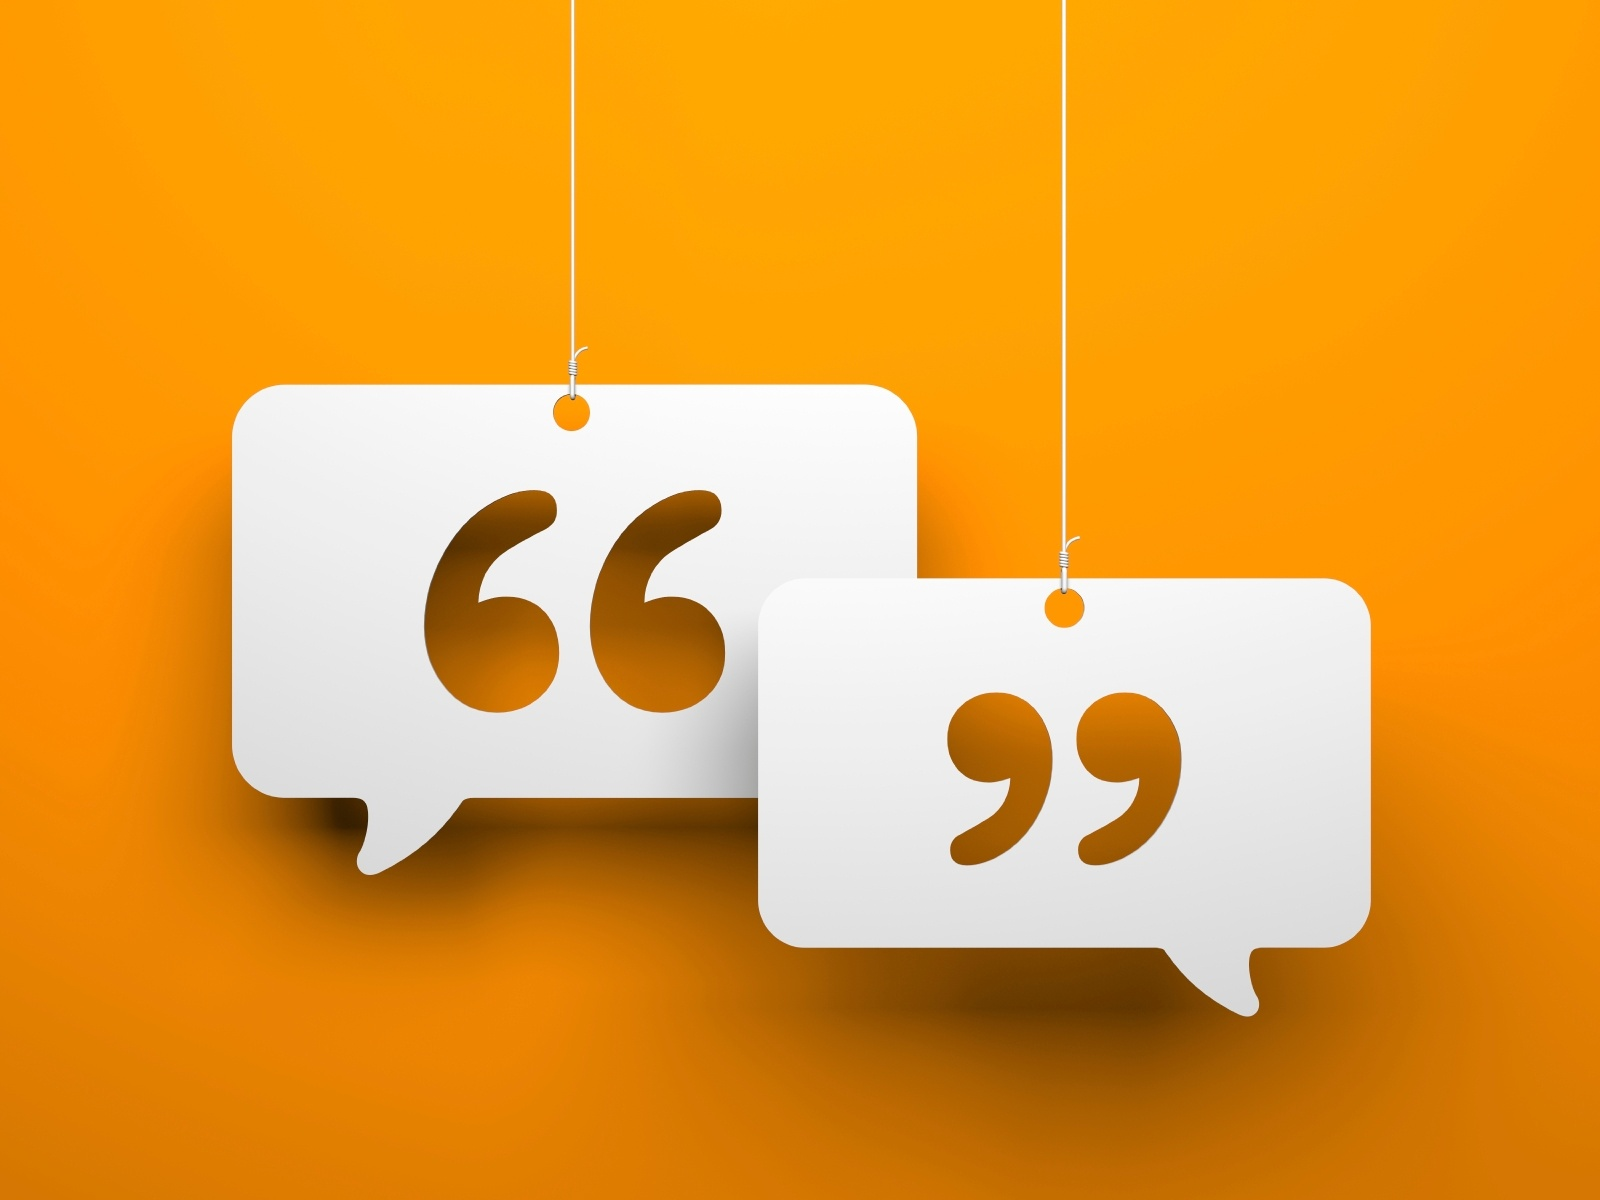 quotation-marks-in-speech-bubbles